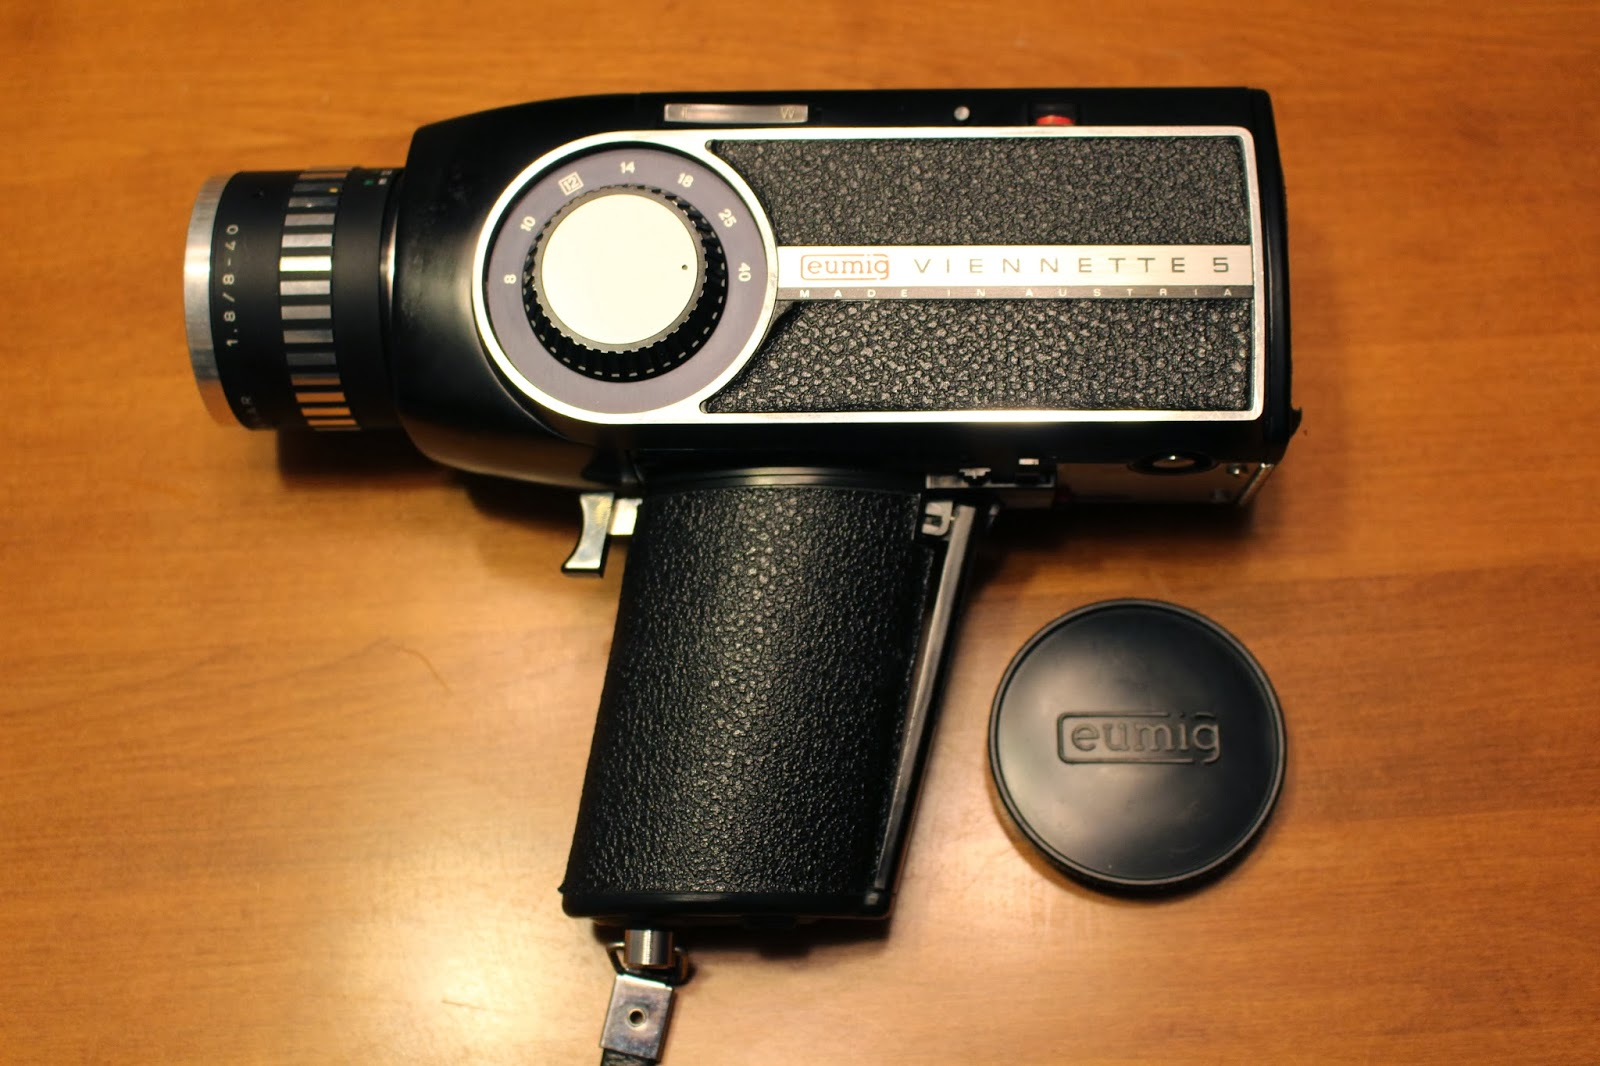 Eumig super 8 camera manual